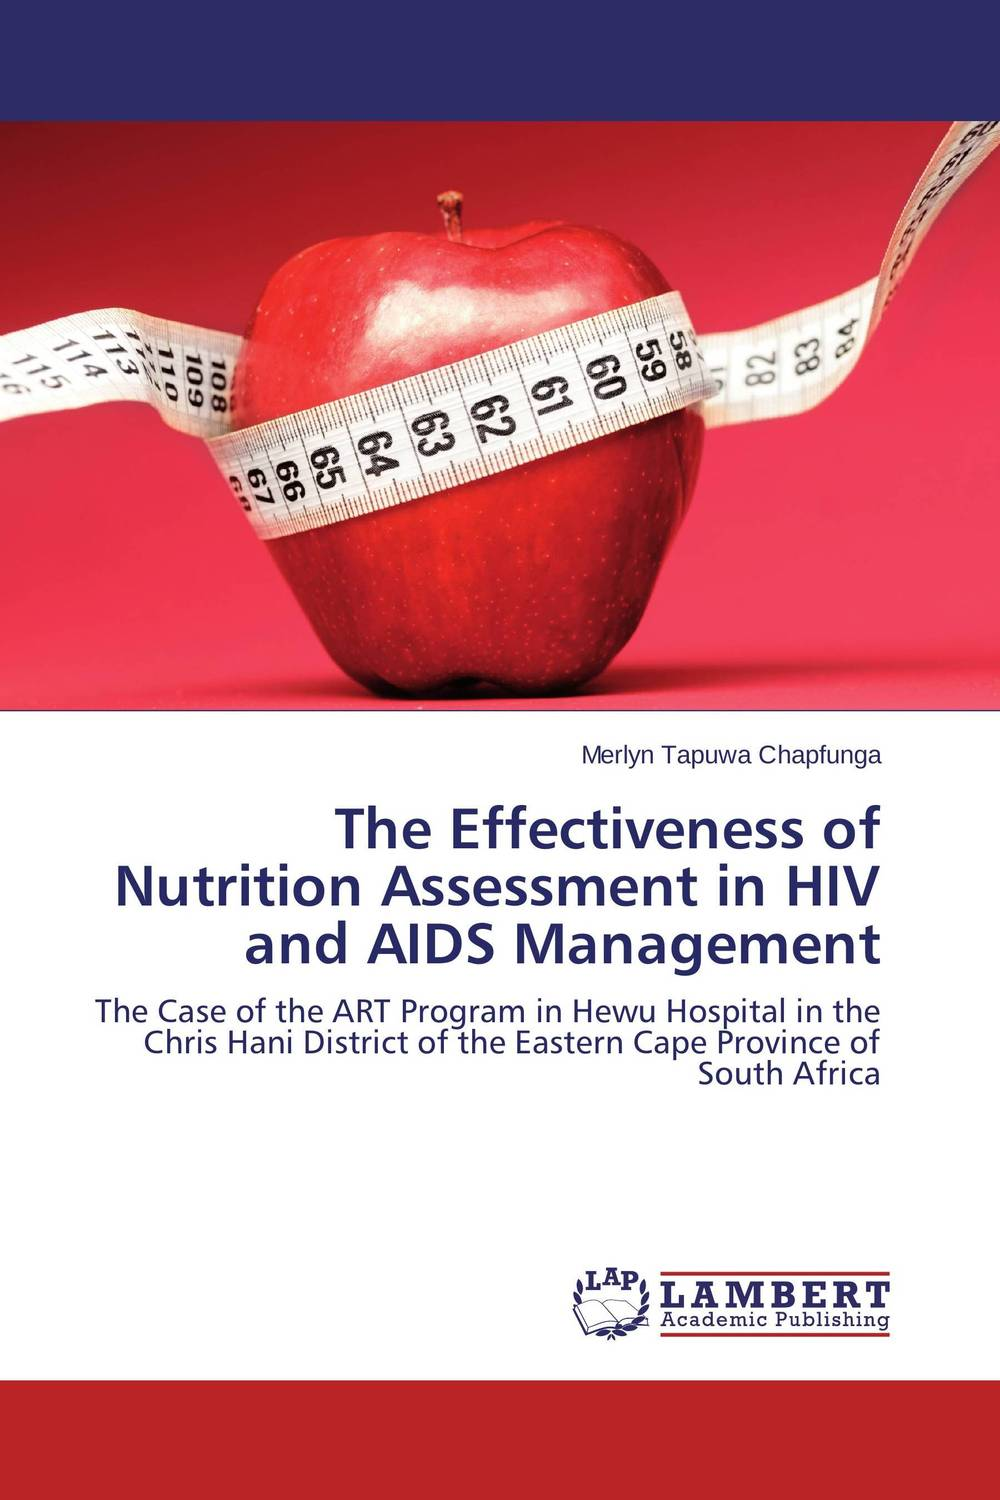 цена на The Effectiveness of Nutrition Assessment in HIV and AIDS Management